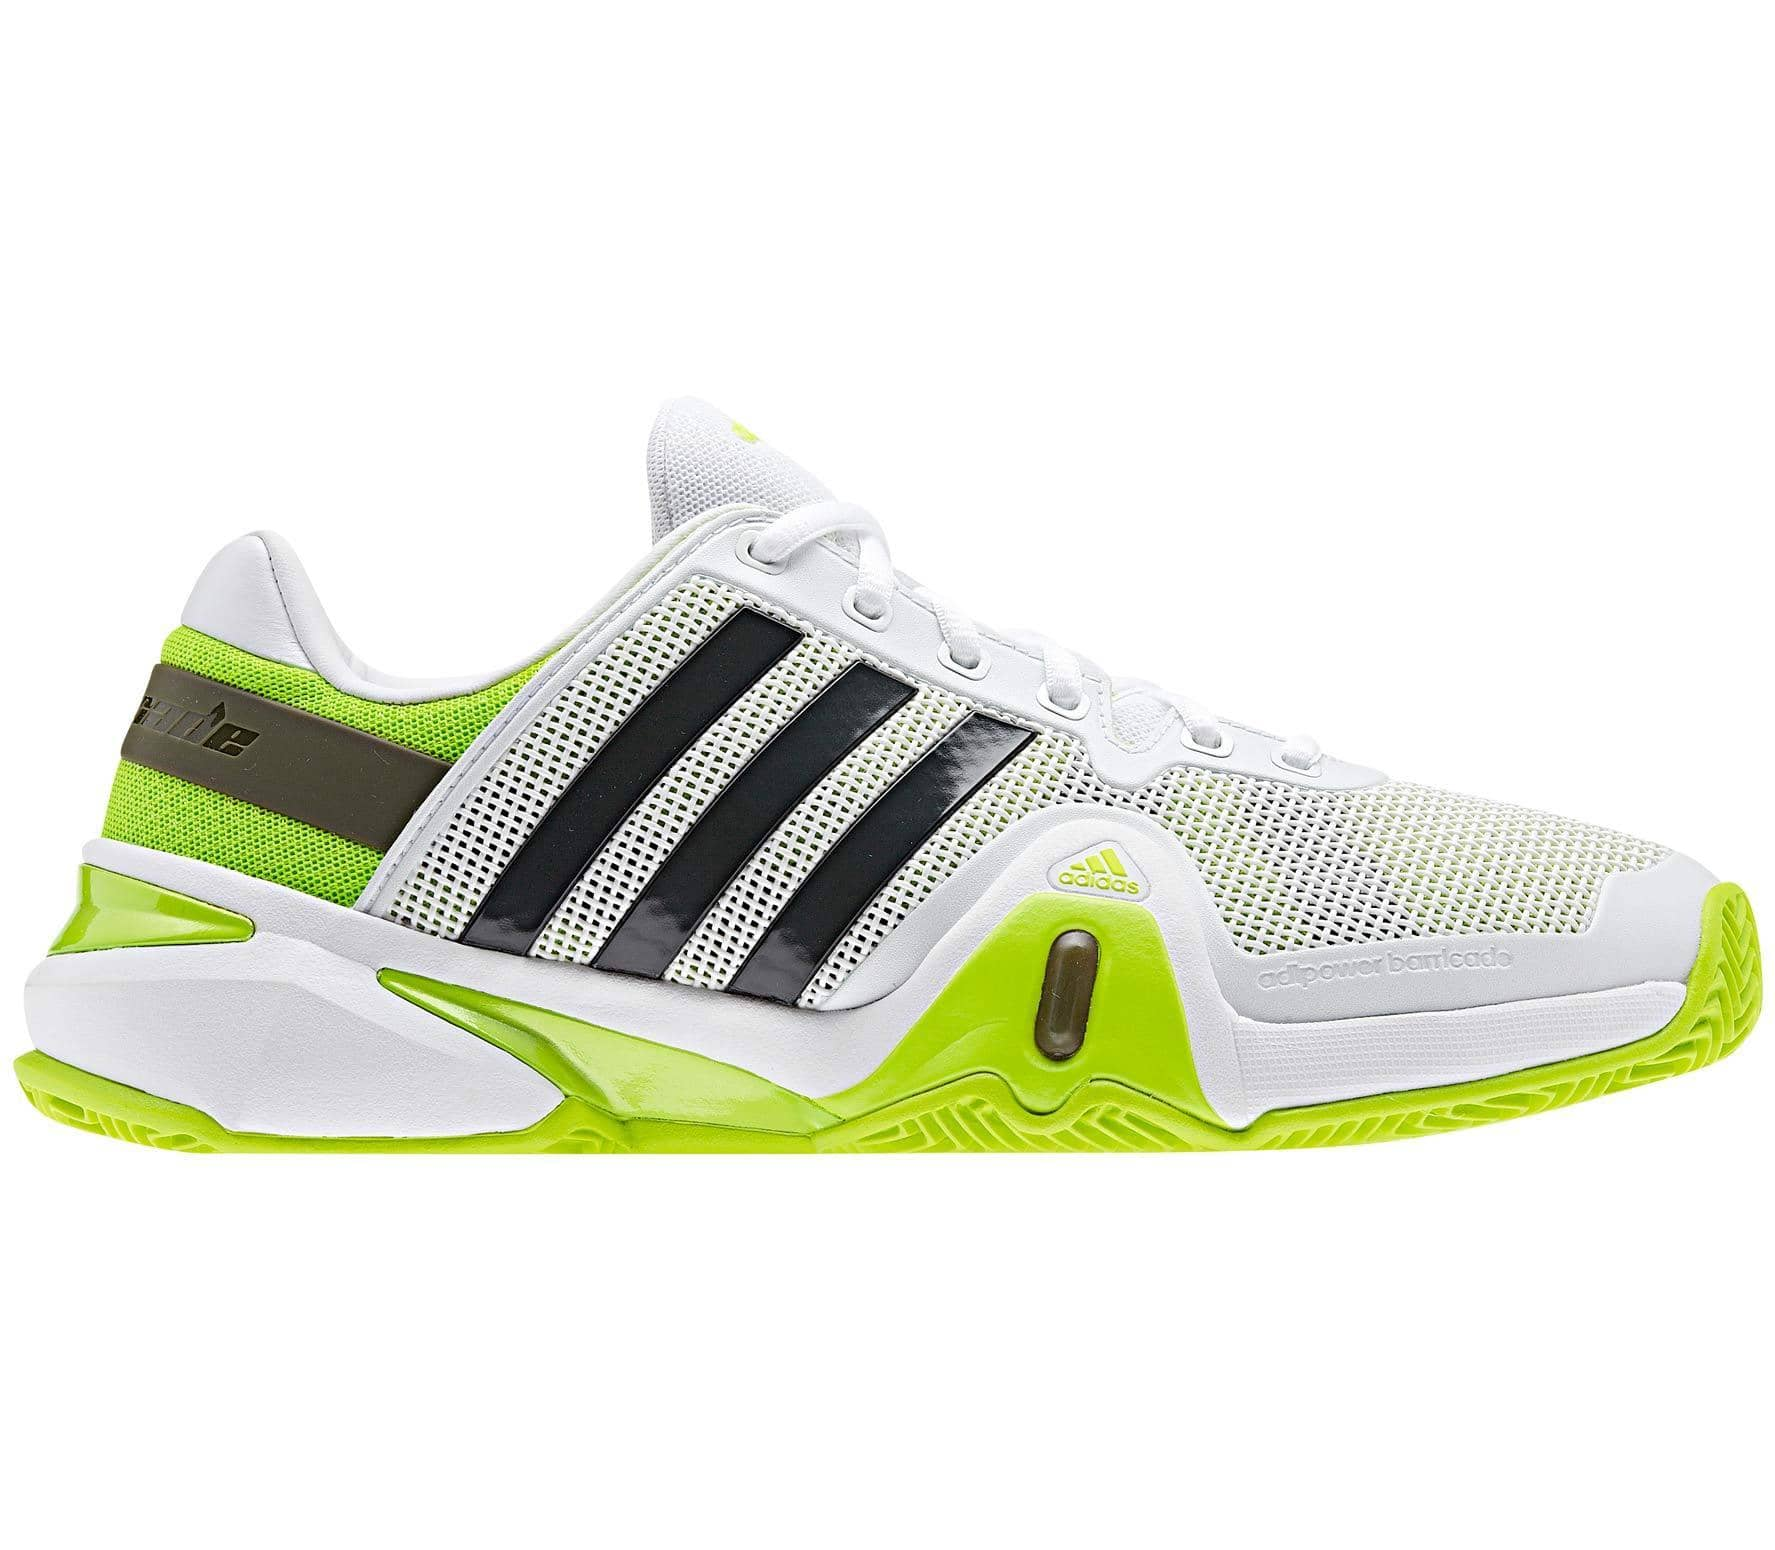 adidas Adipower Barricade 8 Synthetic Hommes Hombre